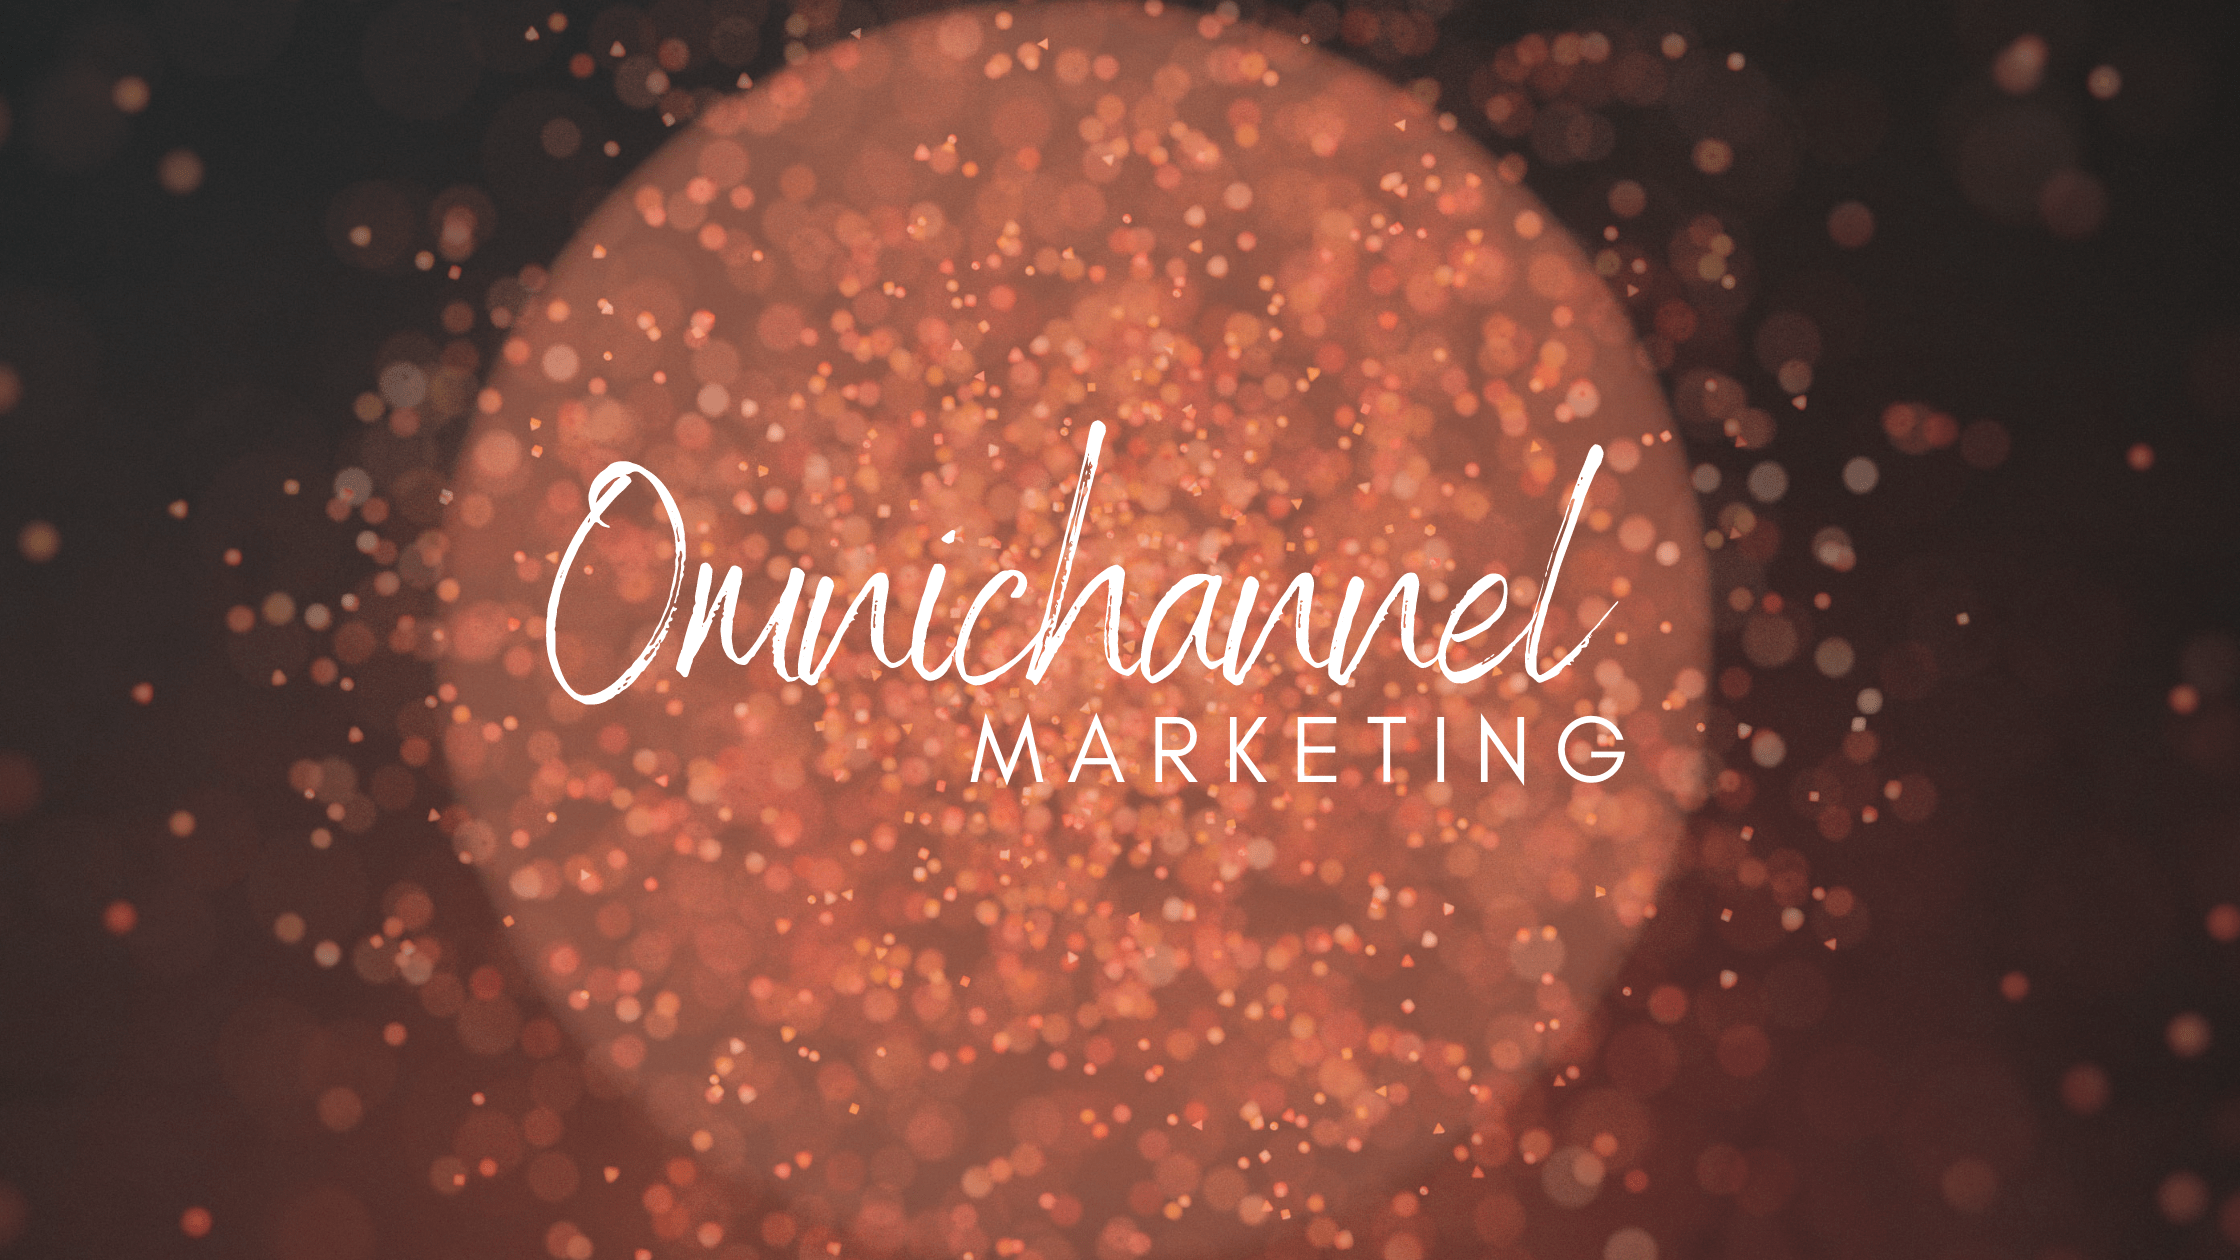 Omnichannel Marketing: The Most Predicted B2B Marketing Trend for 2021